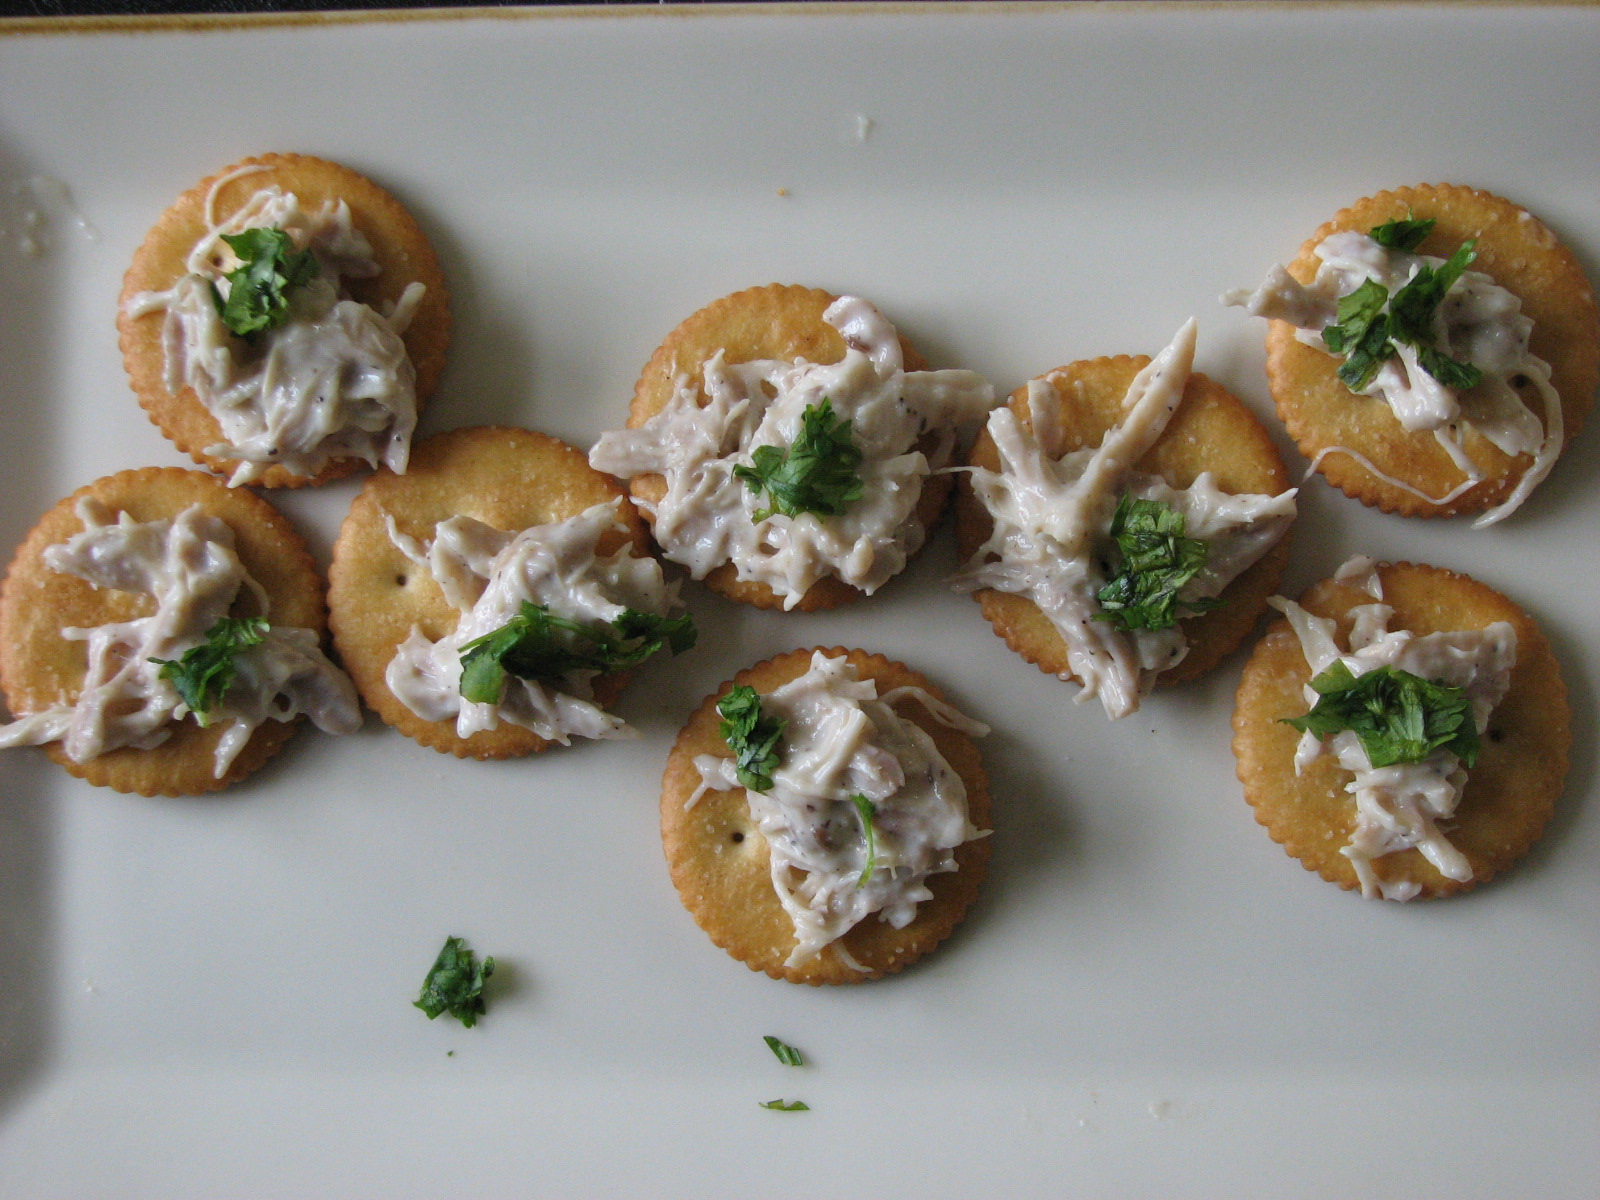 White chicken poppers - when I brought the plate to the coffee table